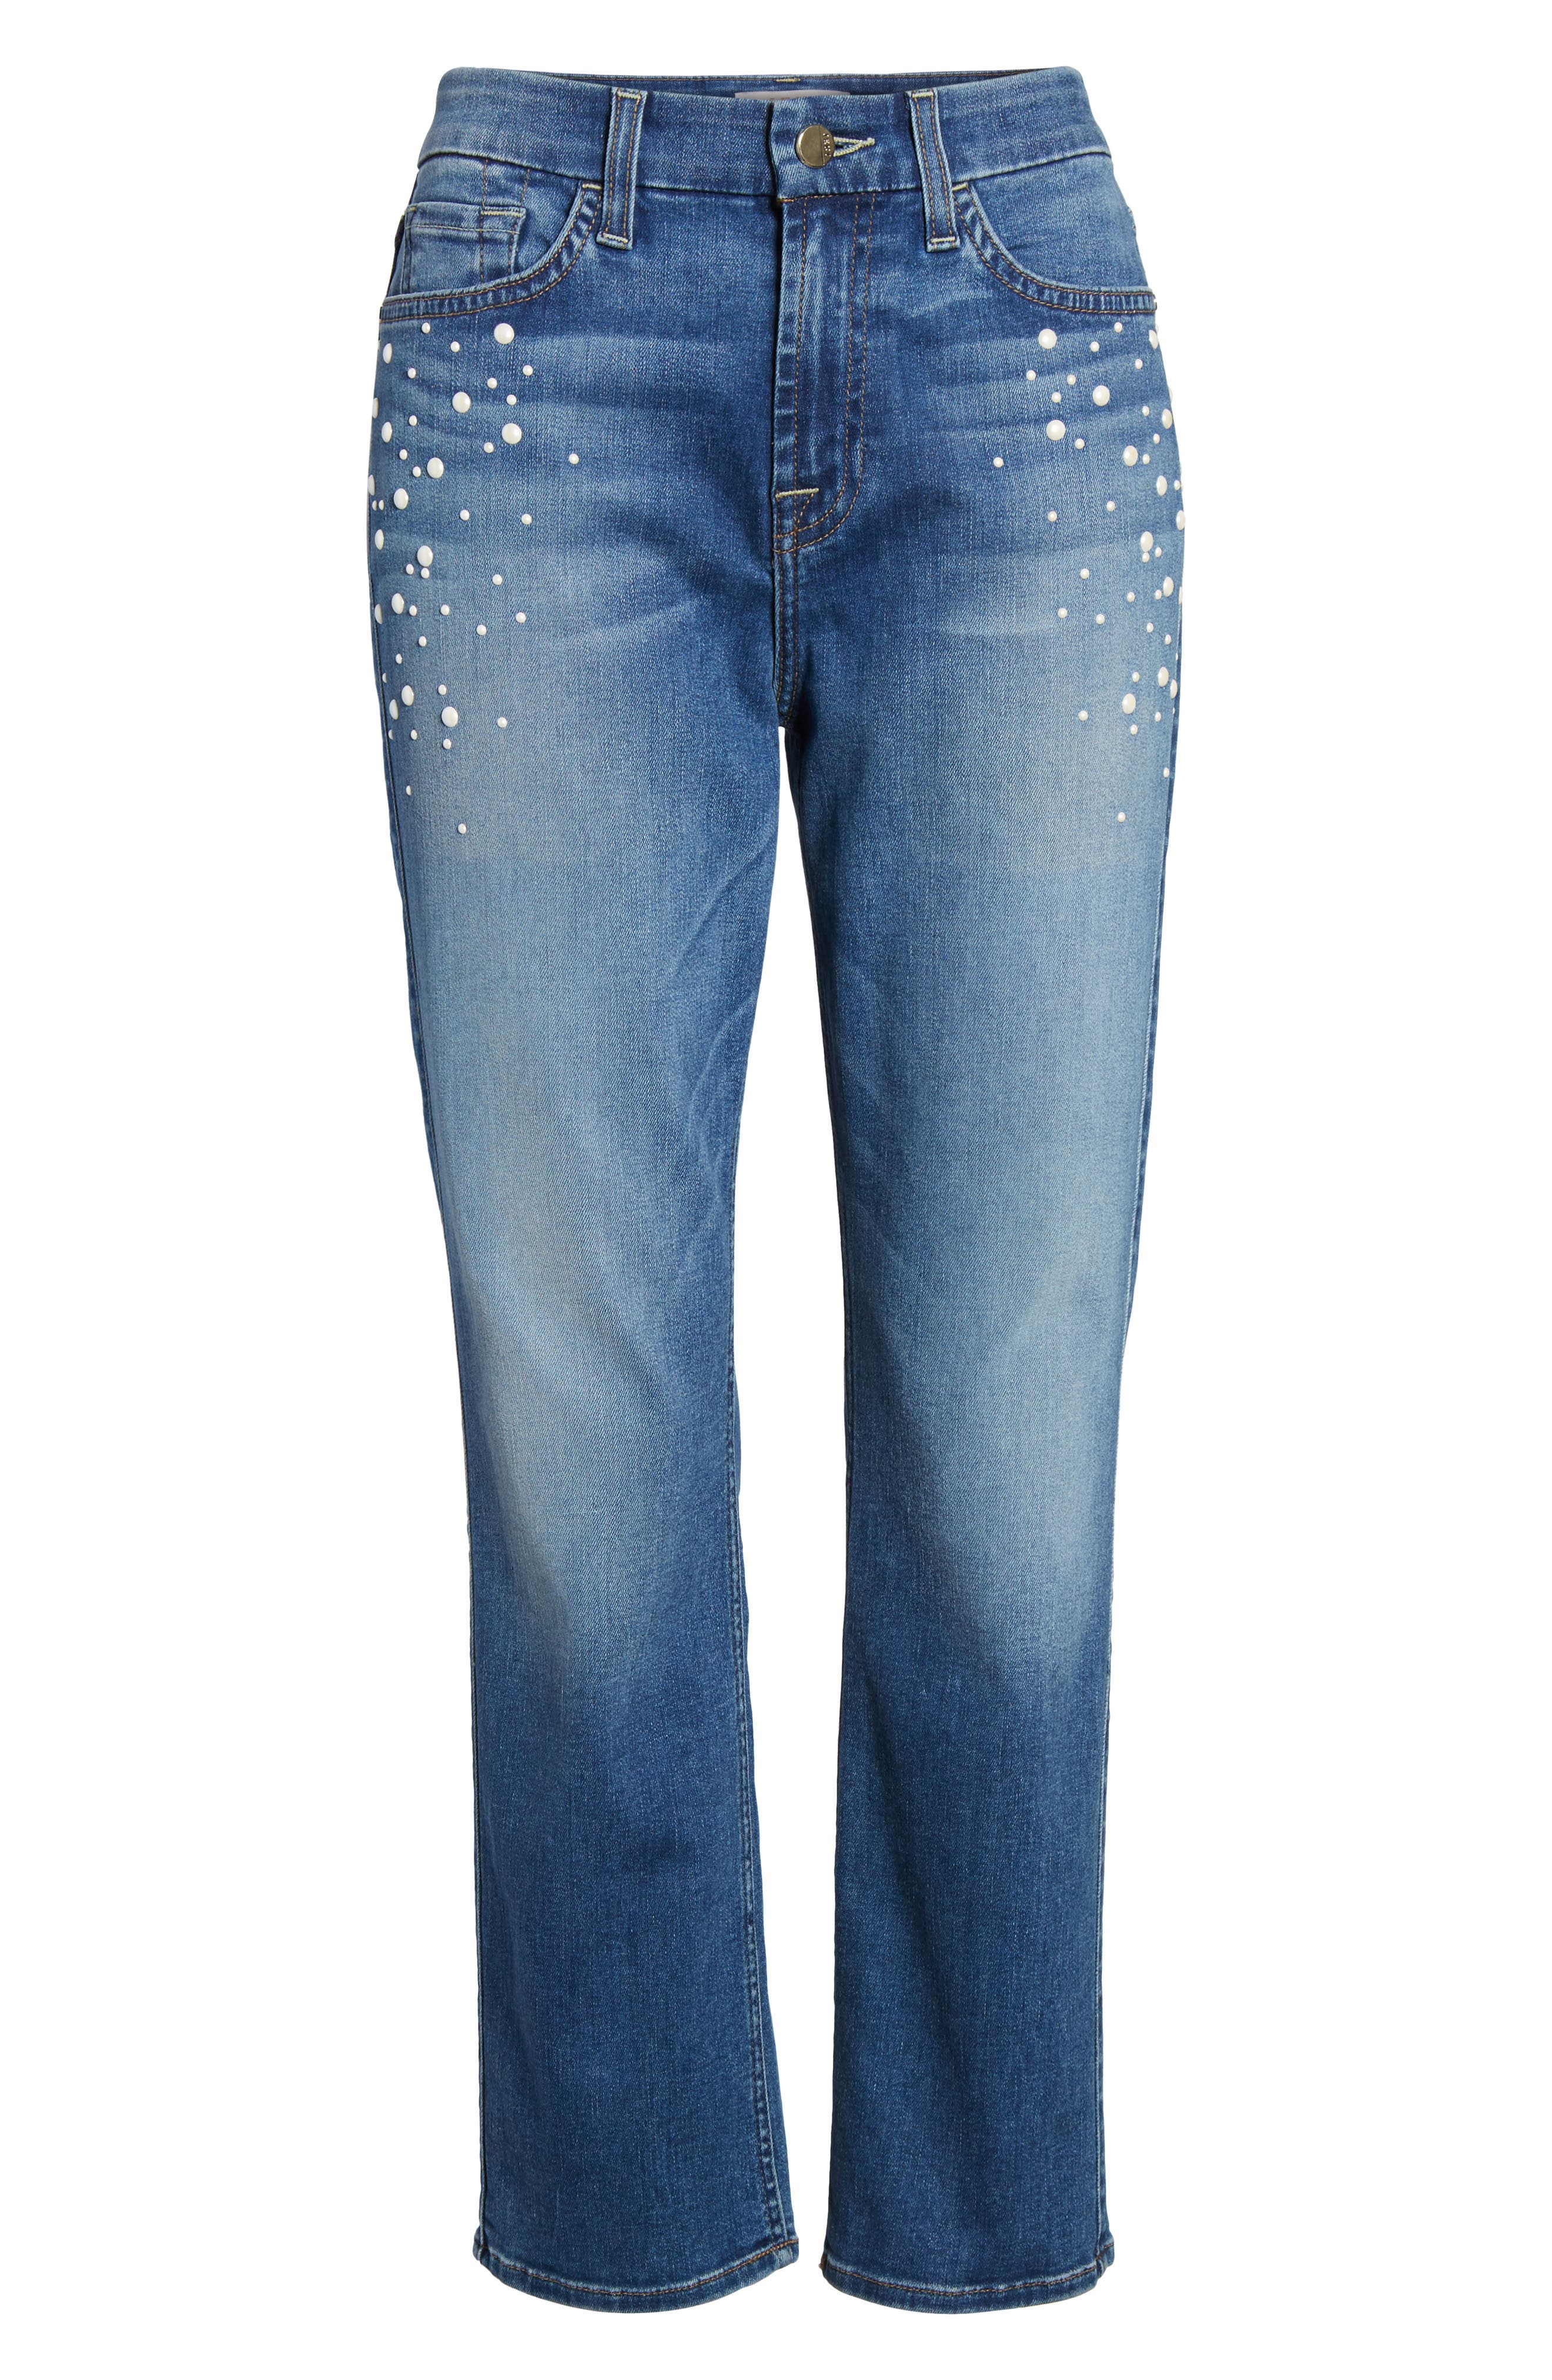 Pearl Embellished Crop Straight Leg Jeans,                             Alternate thumbnail 6, color,                             Garden City